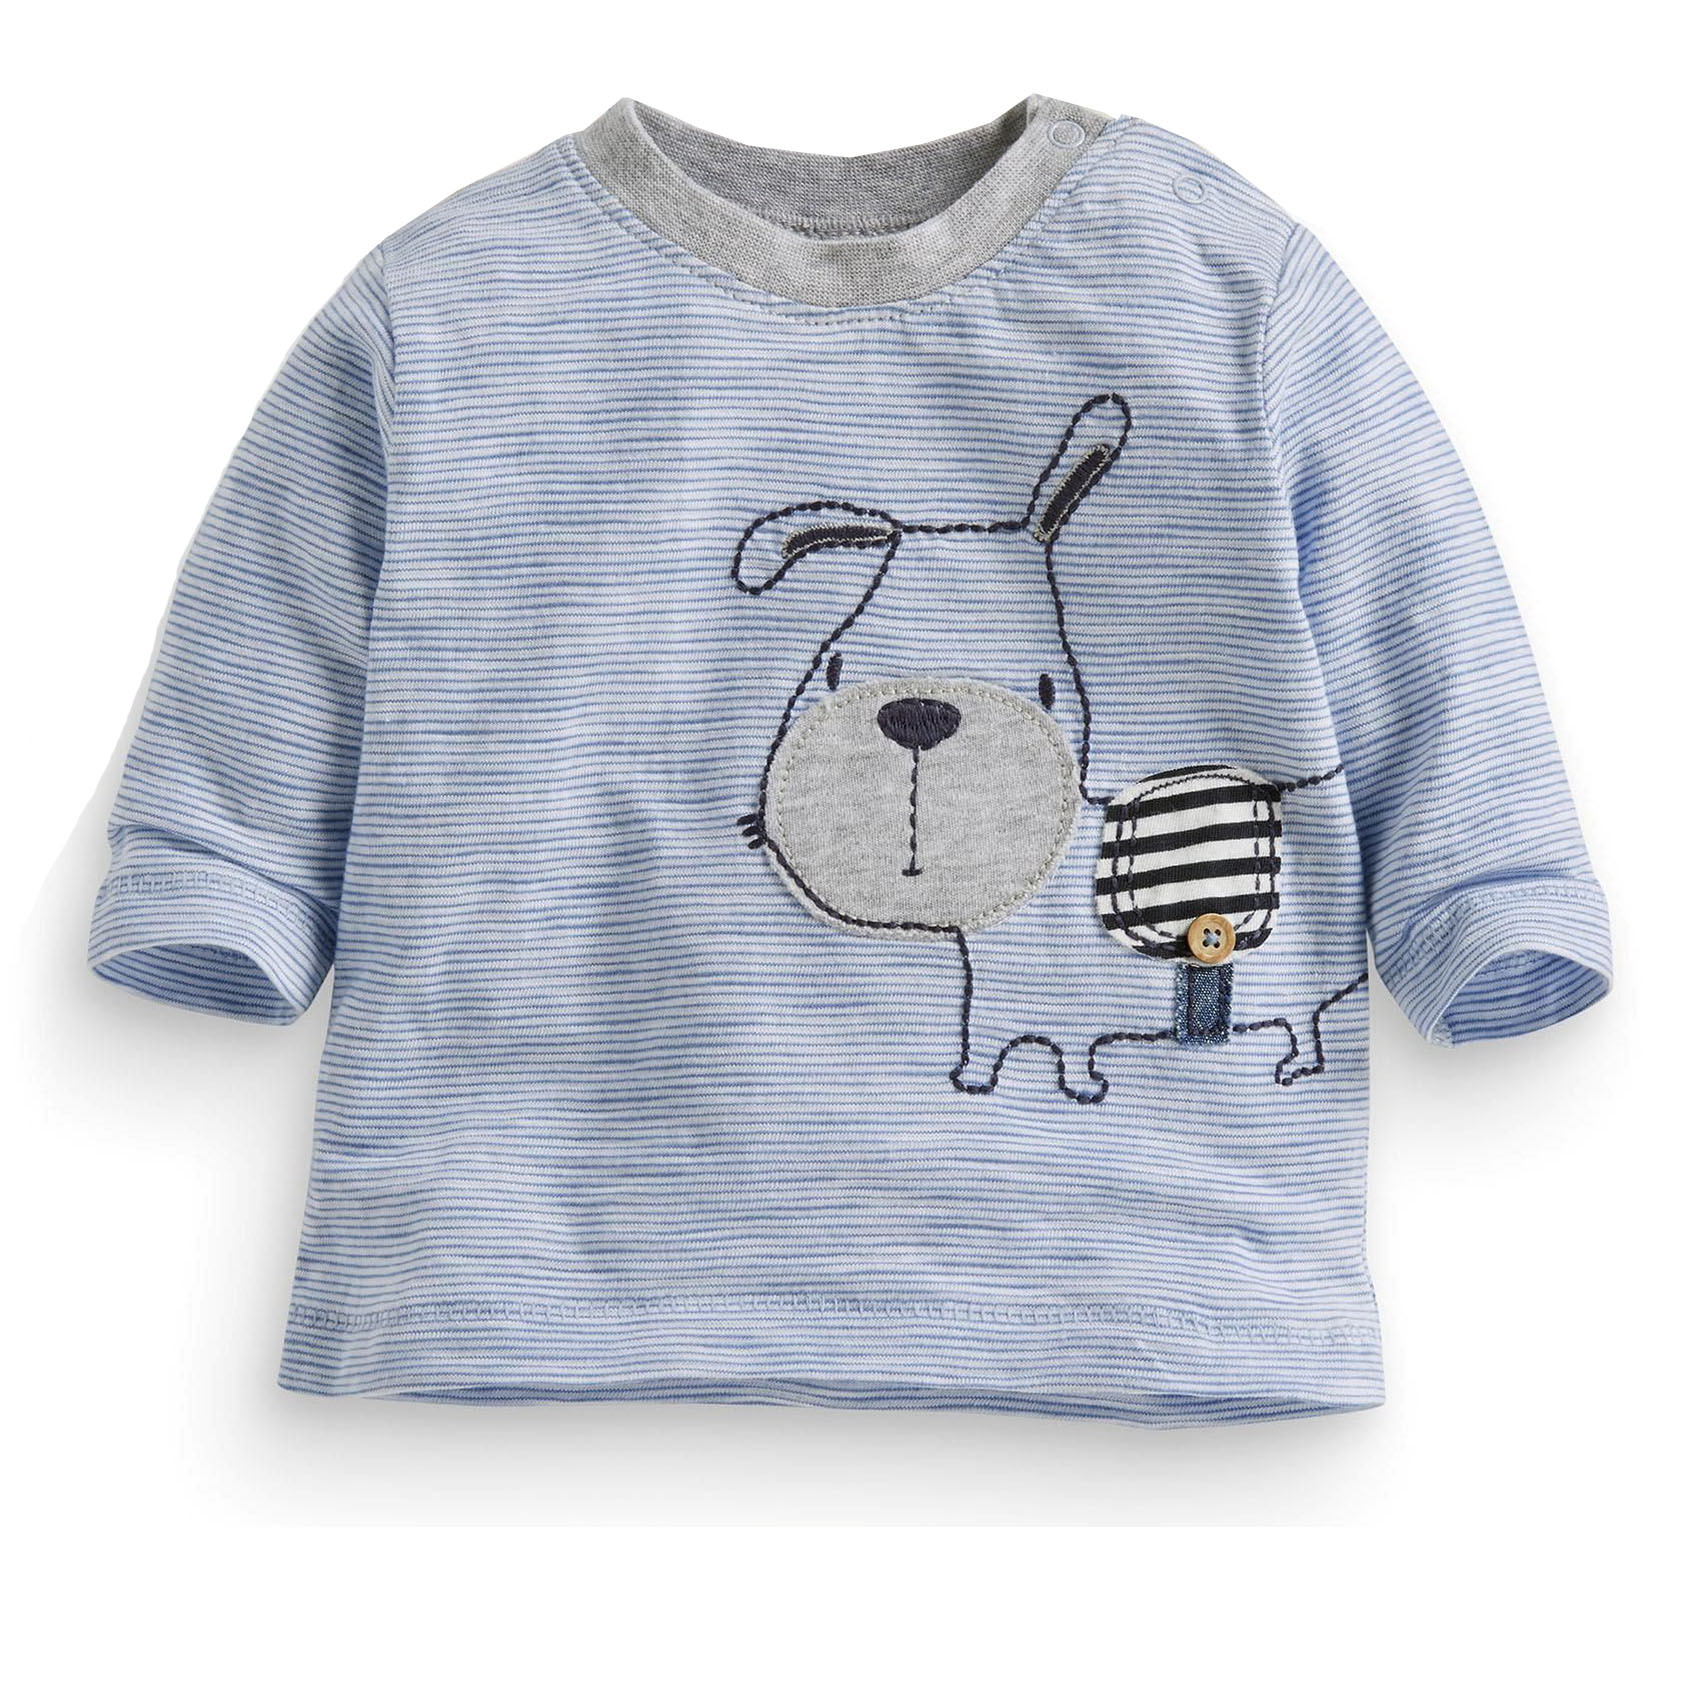 2-7 6pcs/ packet girls/boys wholesale clothes kids cotton cute animal t shirt for autumn and spring